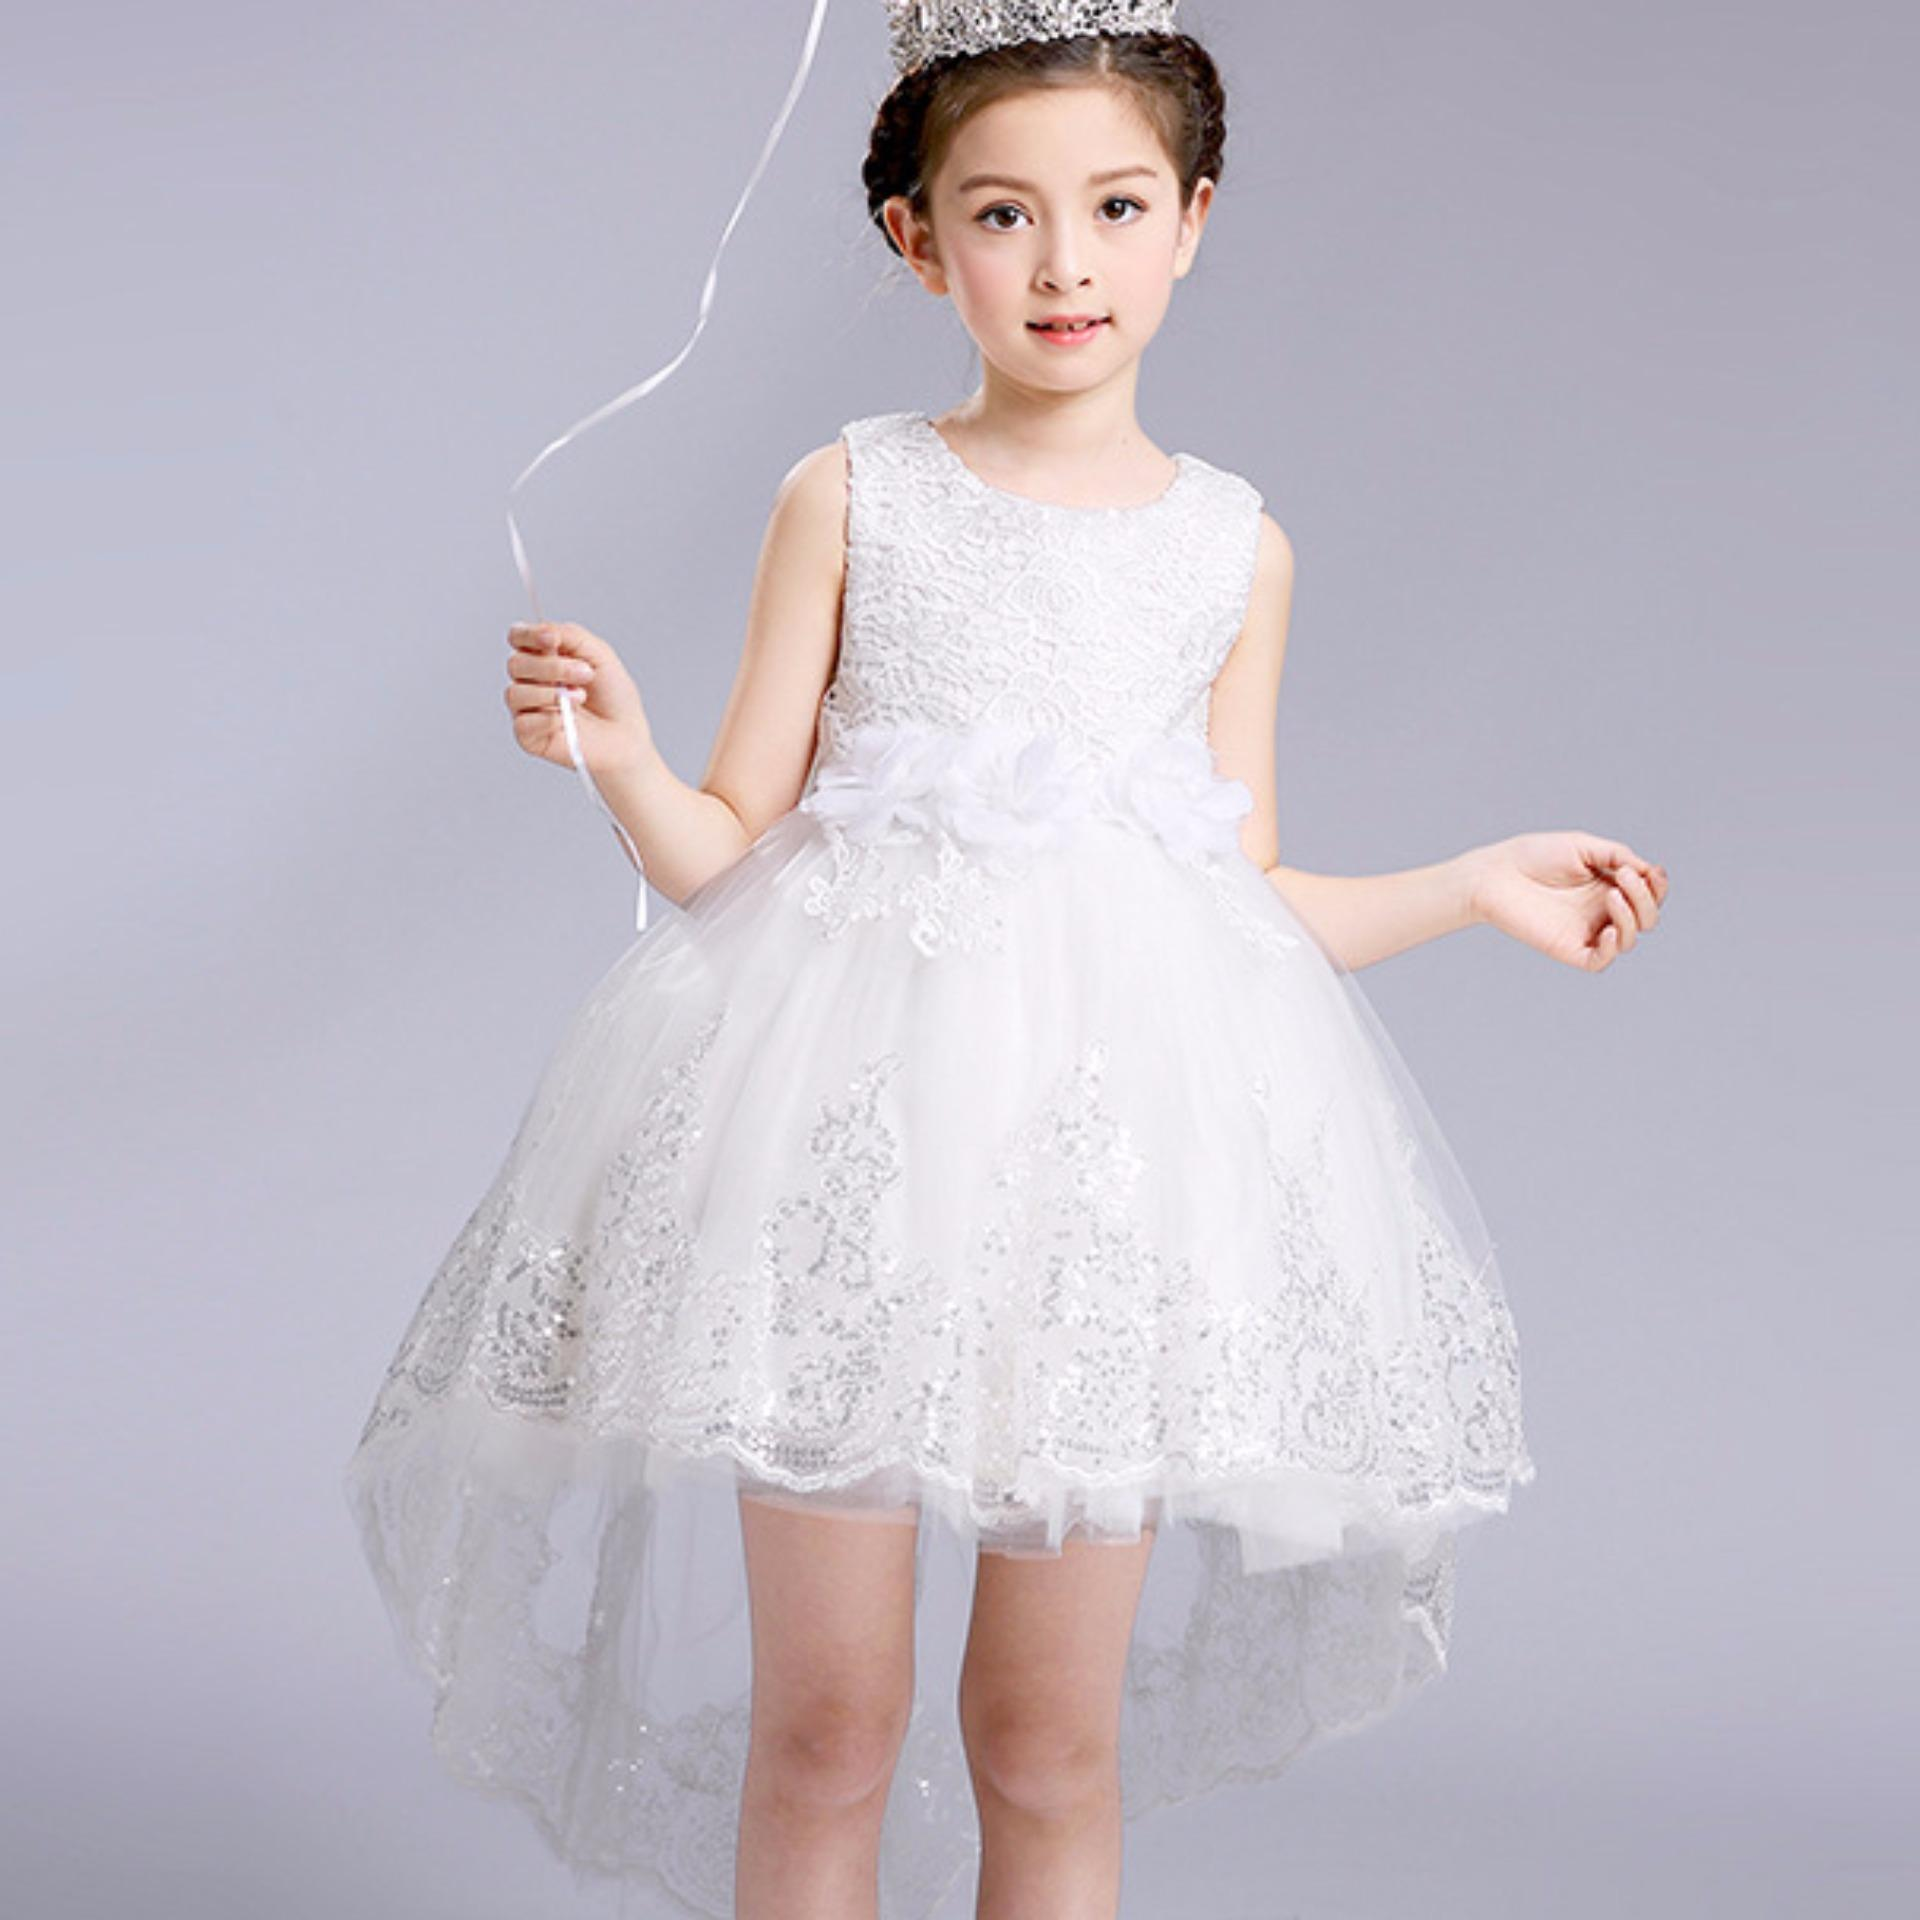 Philippines princess flower girl dress for wedding party princess flower girl dress for wedding party bridesmaid kids bowtrailing lace tulle tutu dress izmirmasajfo